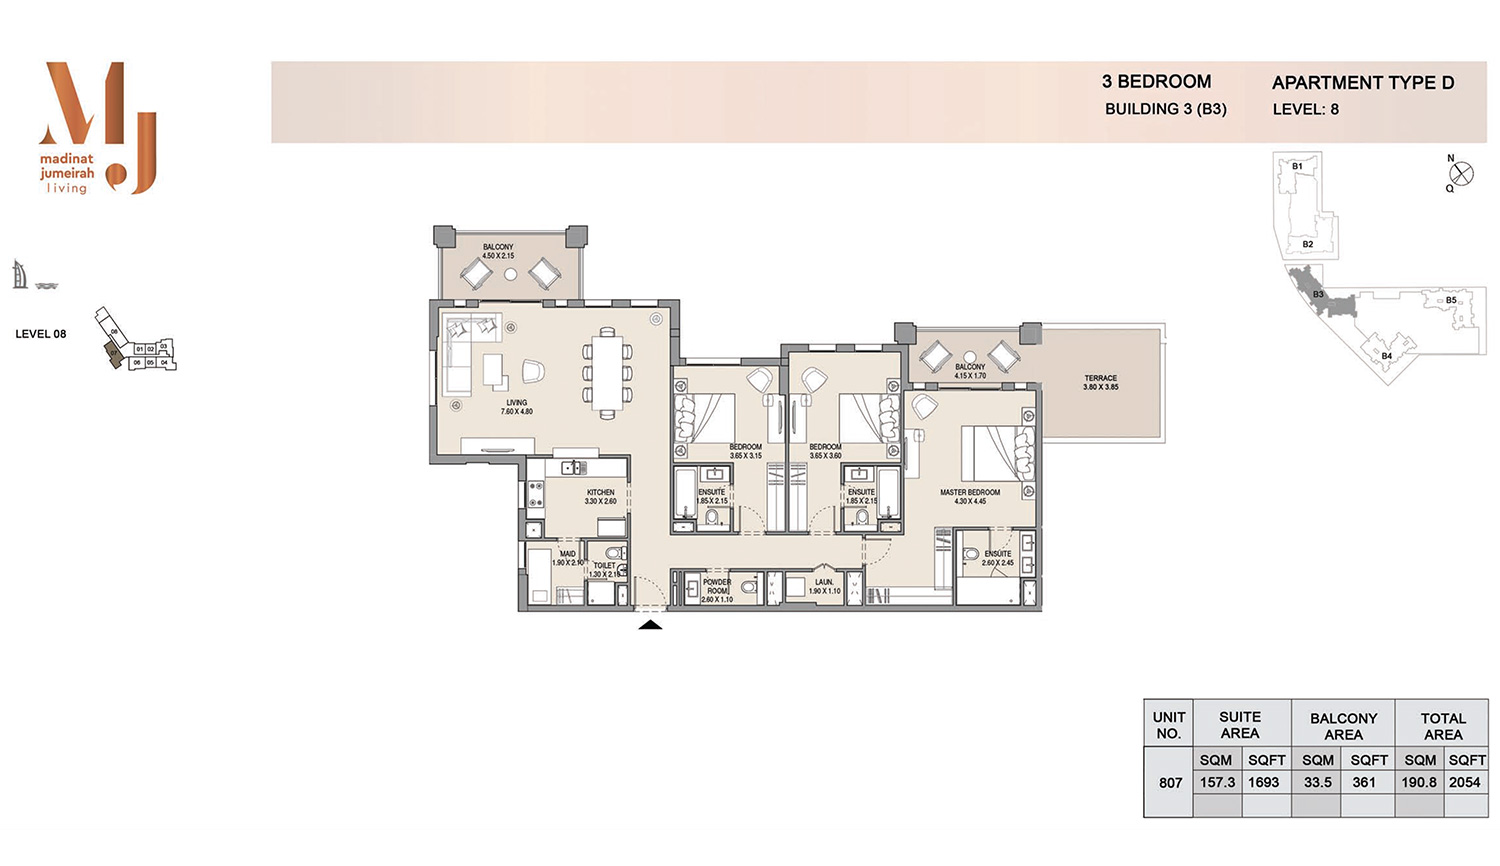 Building3 3 Bedroom, Type D, Levels 8, Size 2054 sq.ft